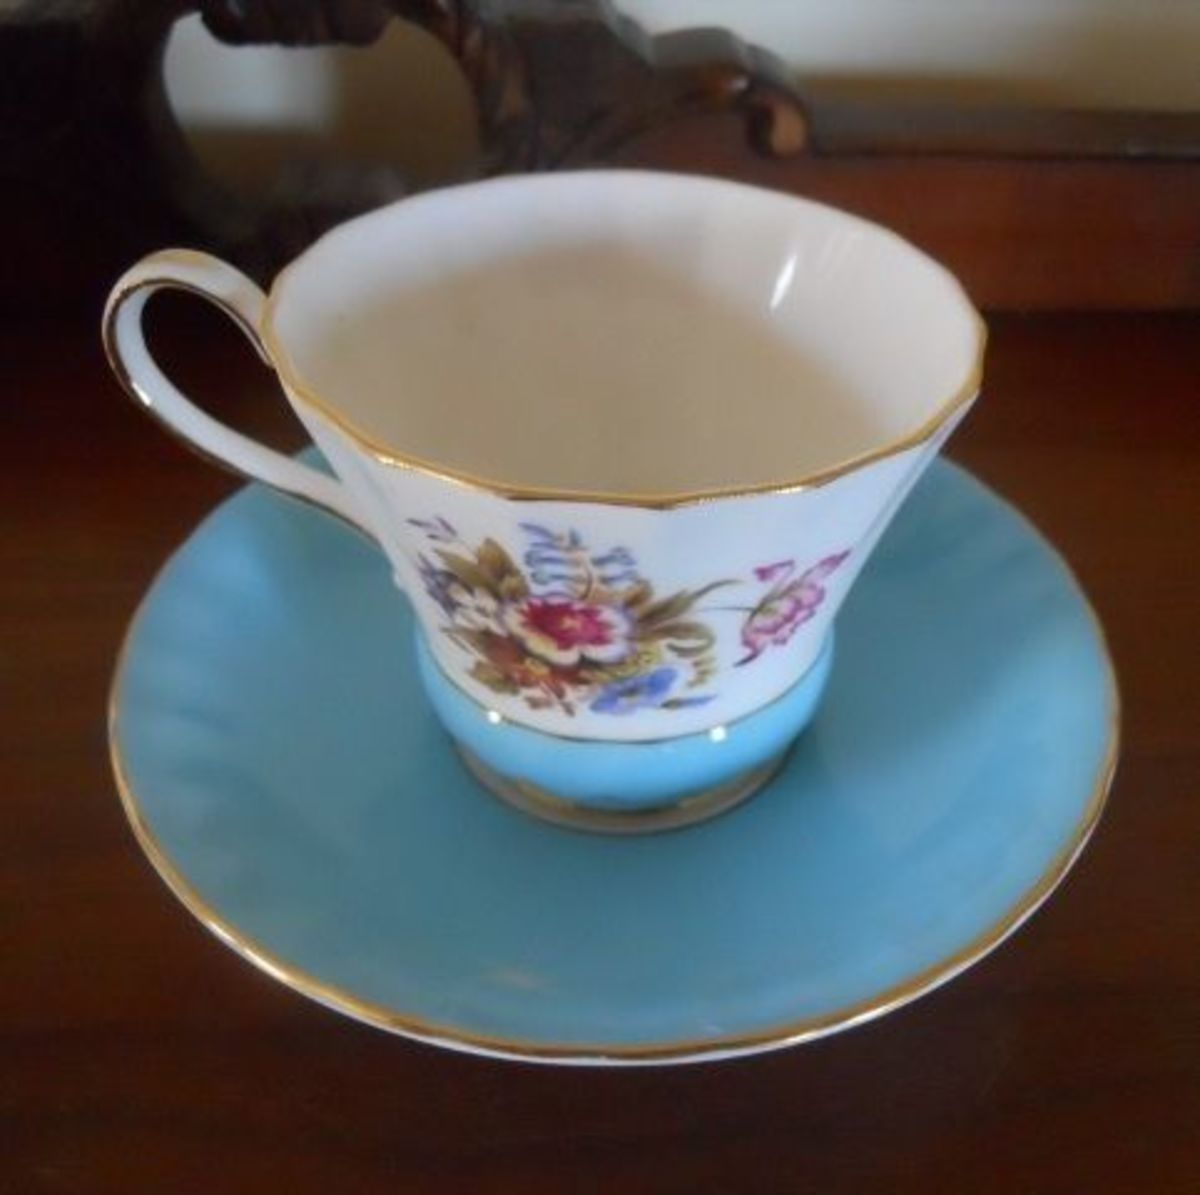 Turquoise with Floral Tea Cup—Aynsley Design #2958